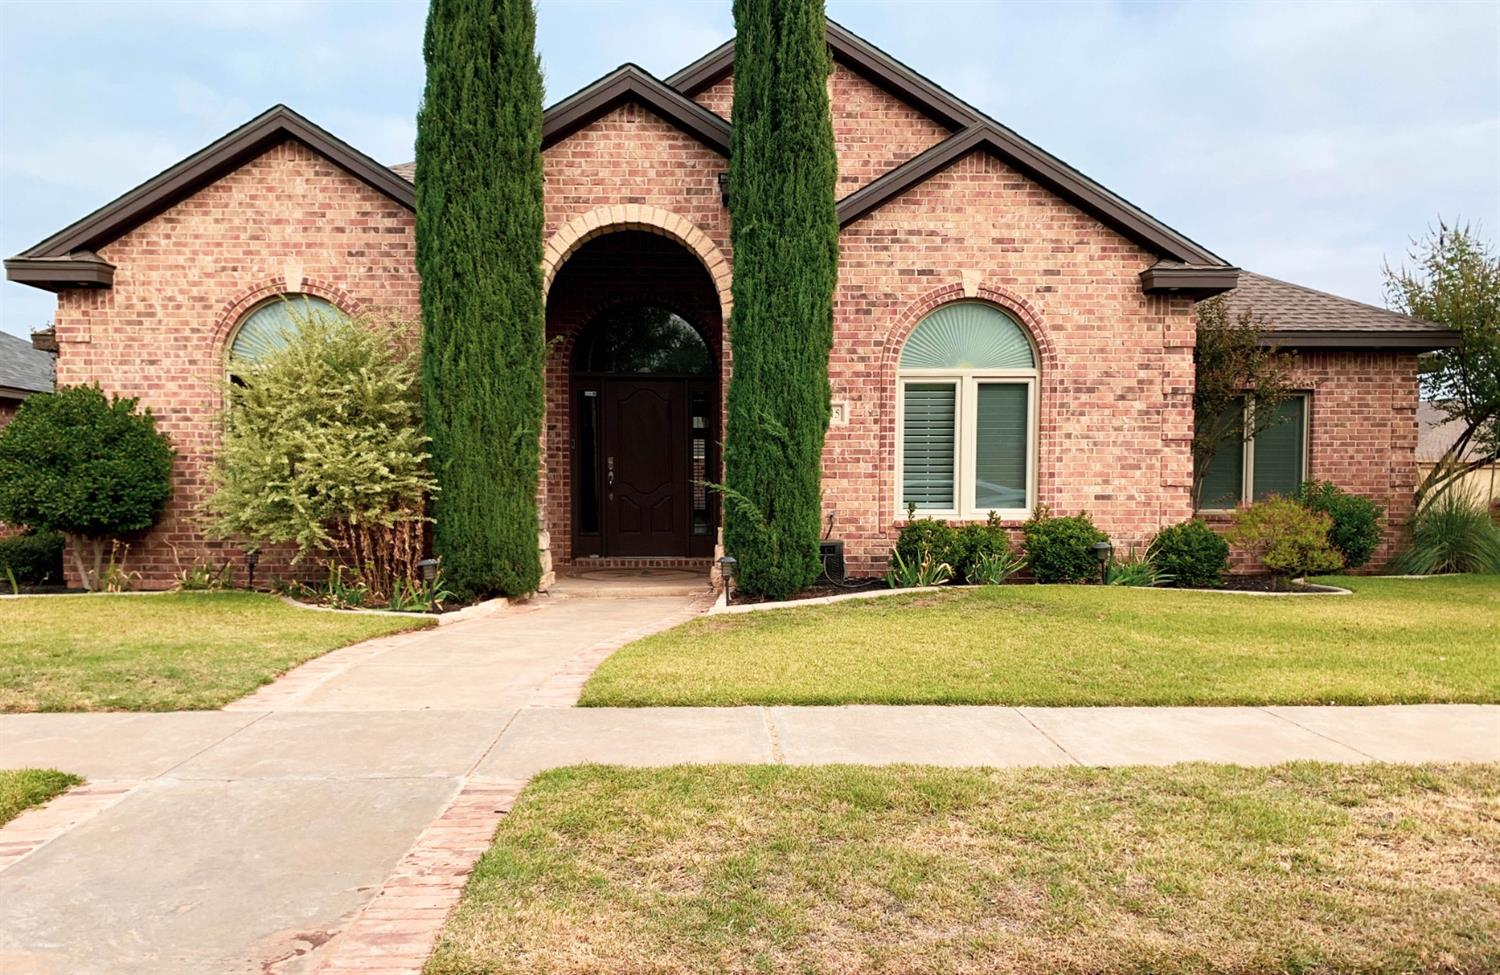 Great home for a growing family on a quiet street. Suncrest is a desirable family neighborhood. Cooper school district. Each Bedroom has its own bath!!! 3 car garage. Don't miss out on this steal.